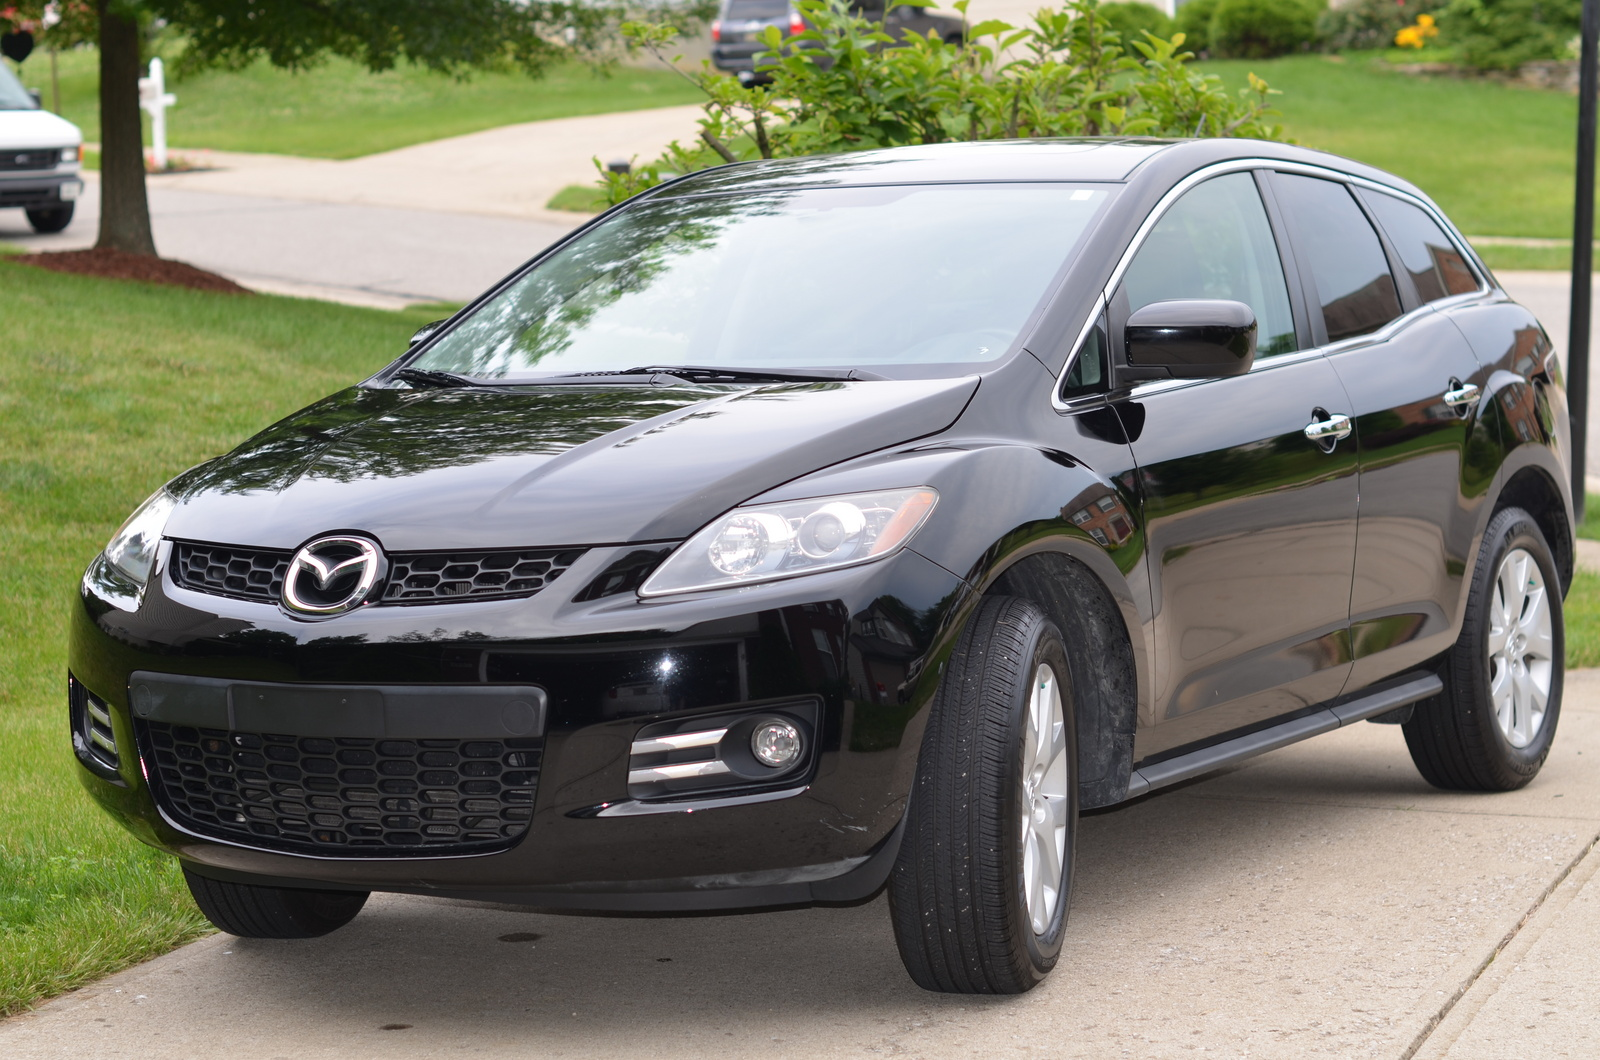 reviews on 2007 mazda cx 7 sport autos post. Black Bedroom Furniture Sets. Home Design Ideas